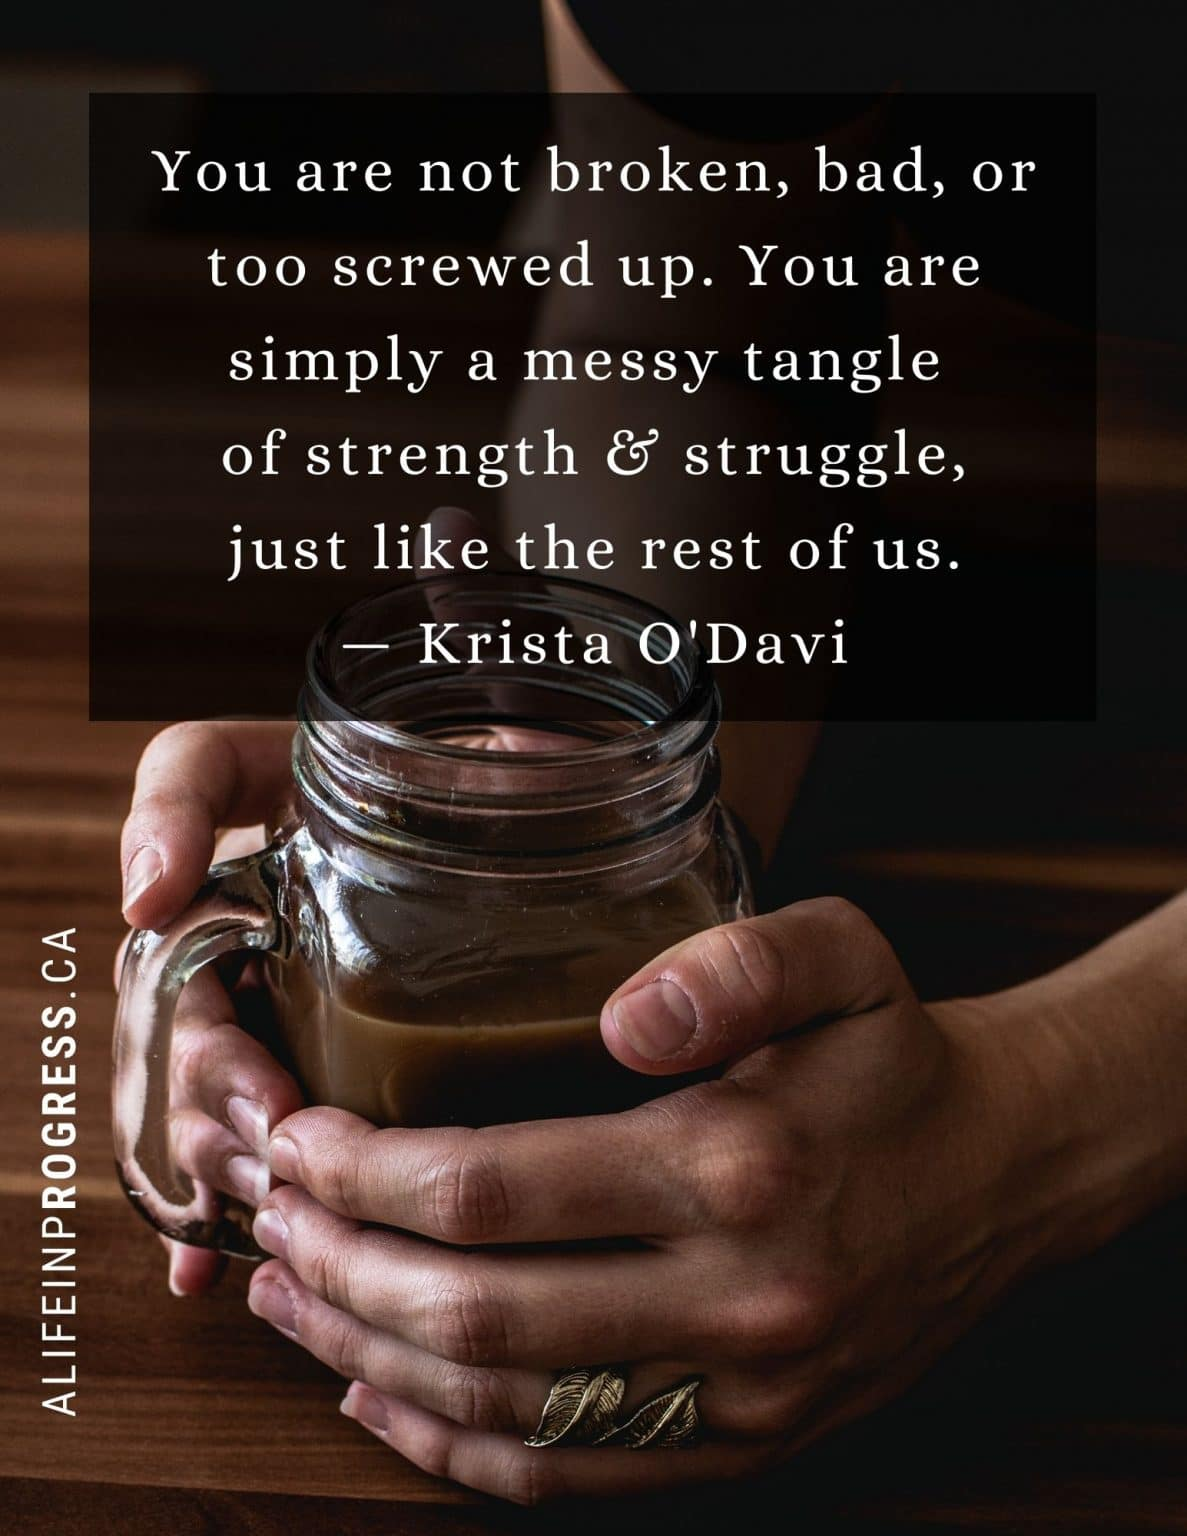 A brave and beautiful life: You are not broken, bad, or too screwed up. You are simply a messy tangle of strength and struggle, just like the rest of us. #rebrandingmiddleage #alifeinprogress #brave #beautiful #whole #onpurpose